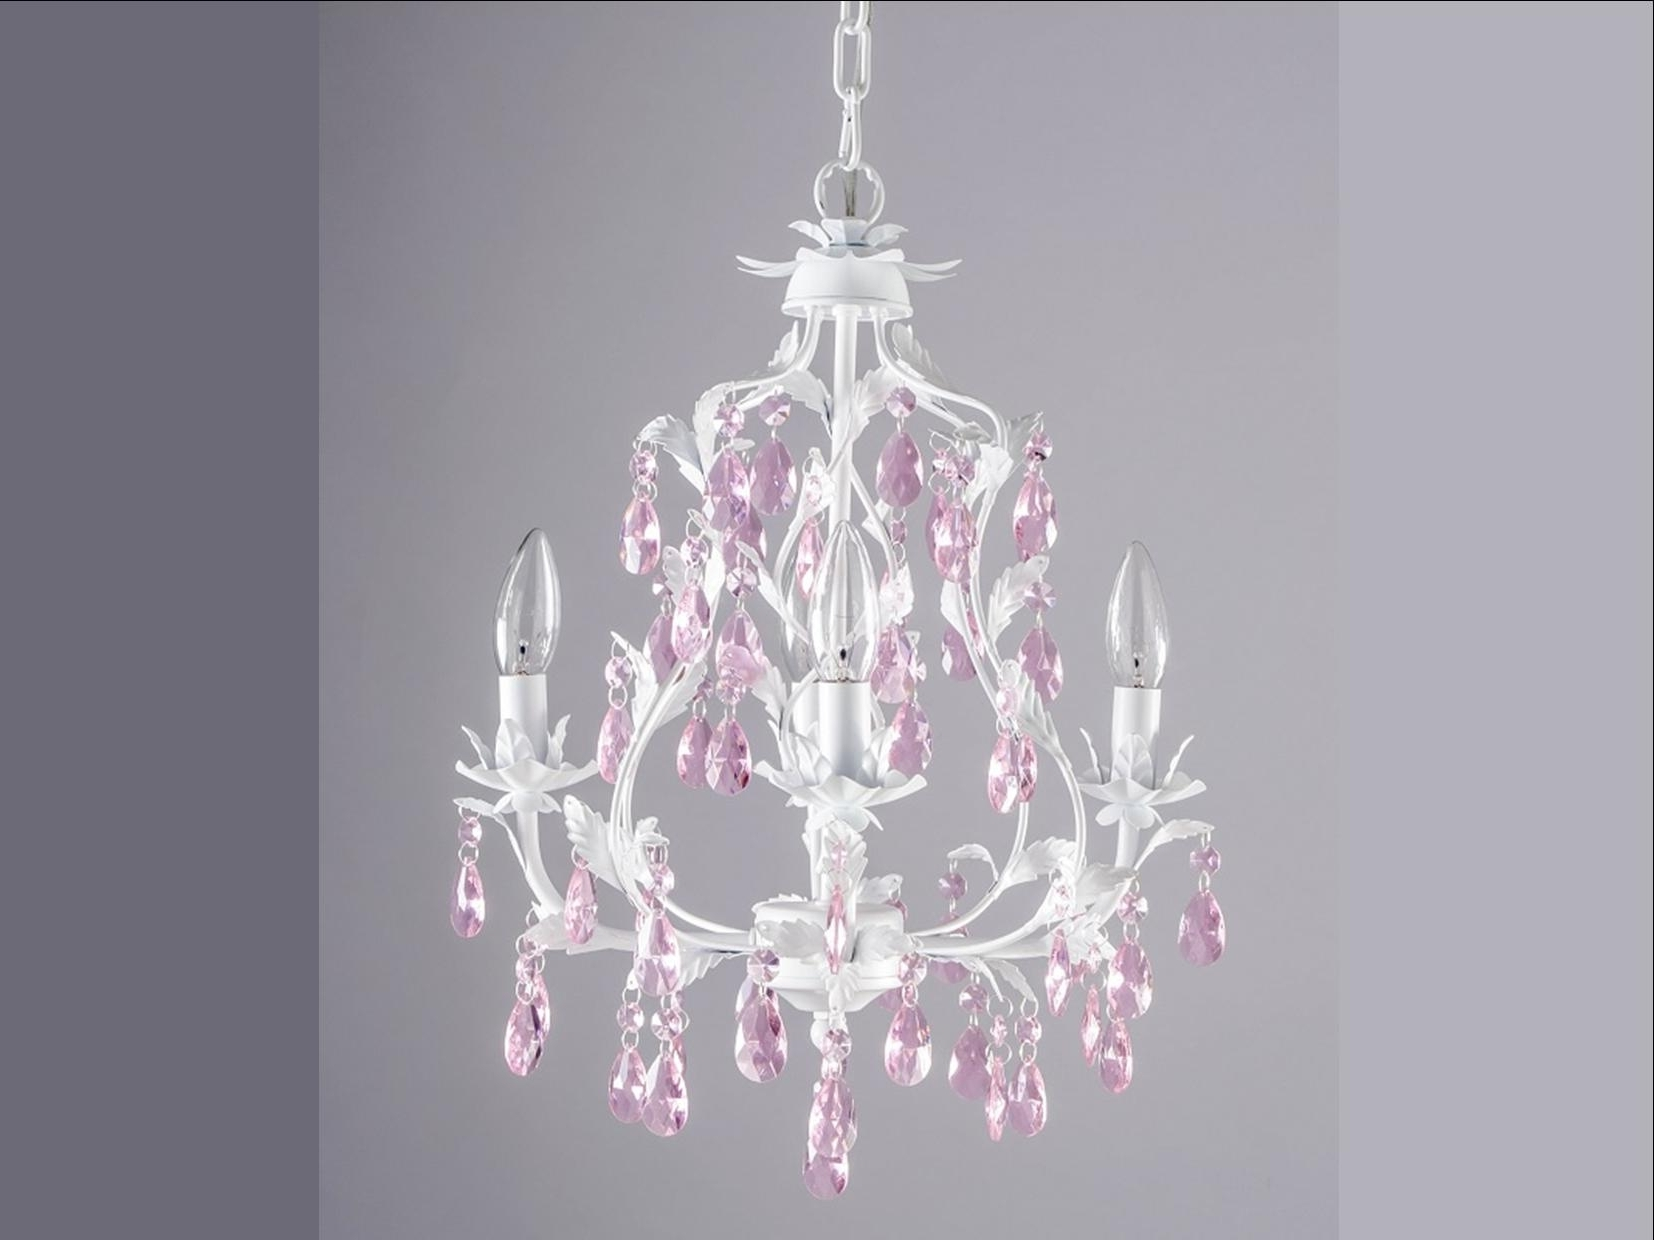 Current Childrens Pendant Lamp Shades Plug In Chandeliers For Kids Pink In Chandeliers For Kids (View 10 of 20)